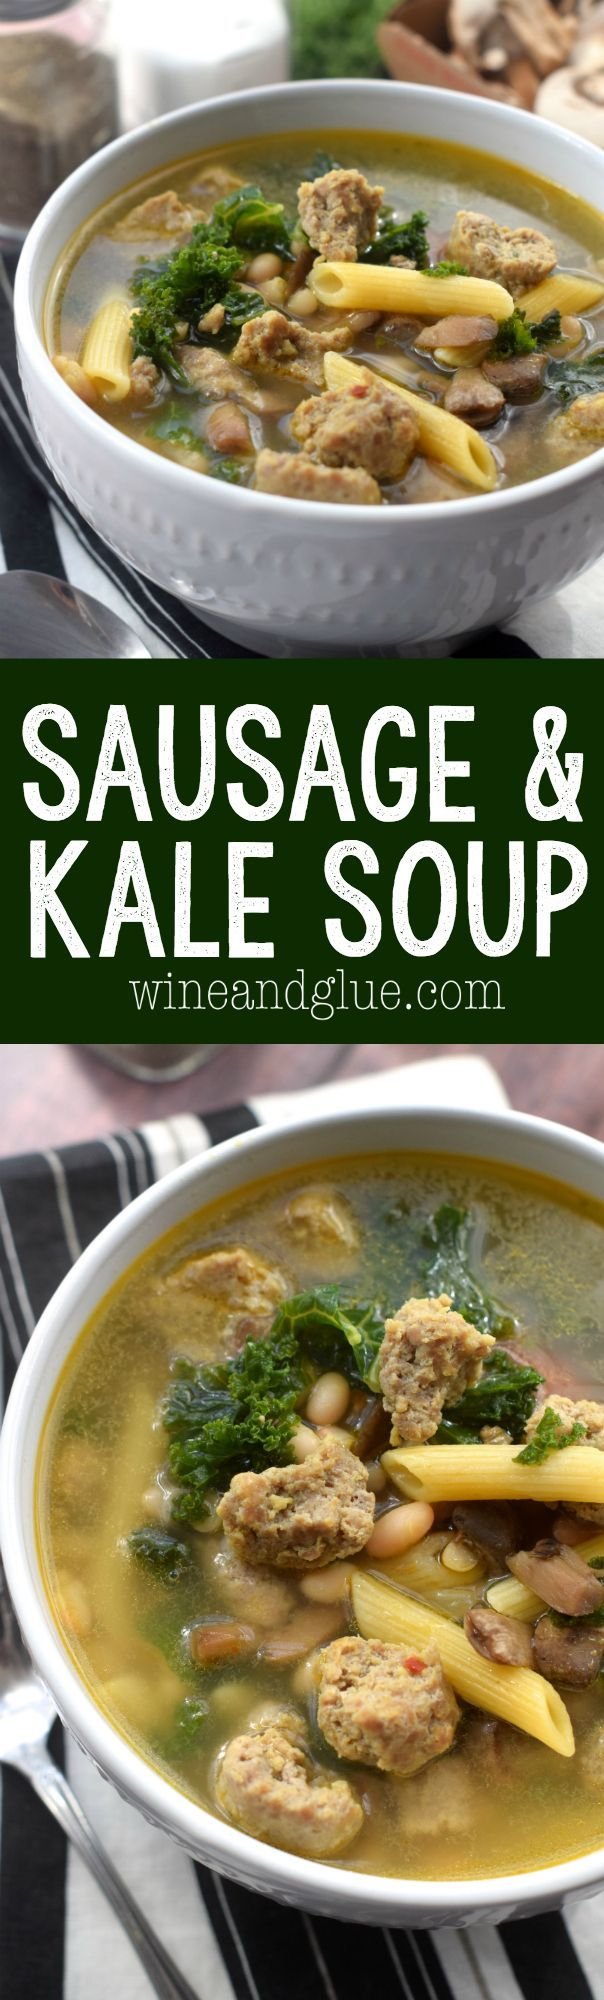 This Sausage and Kale Soup is a family favorite that we eat a few times a month…